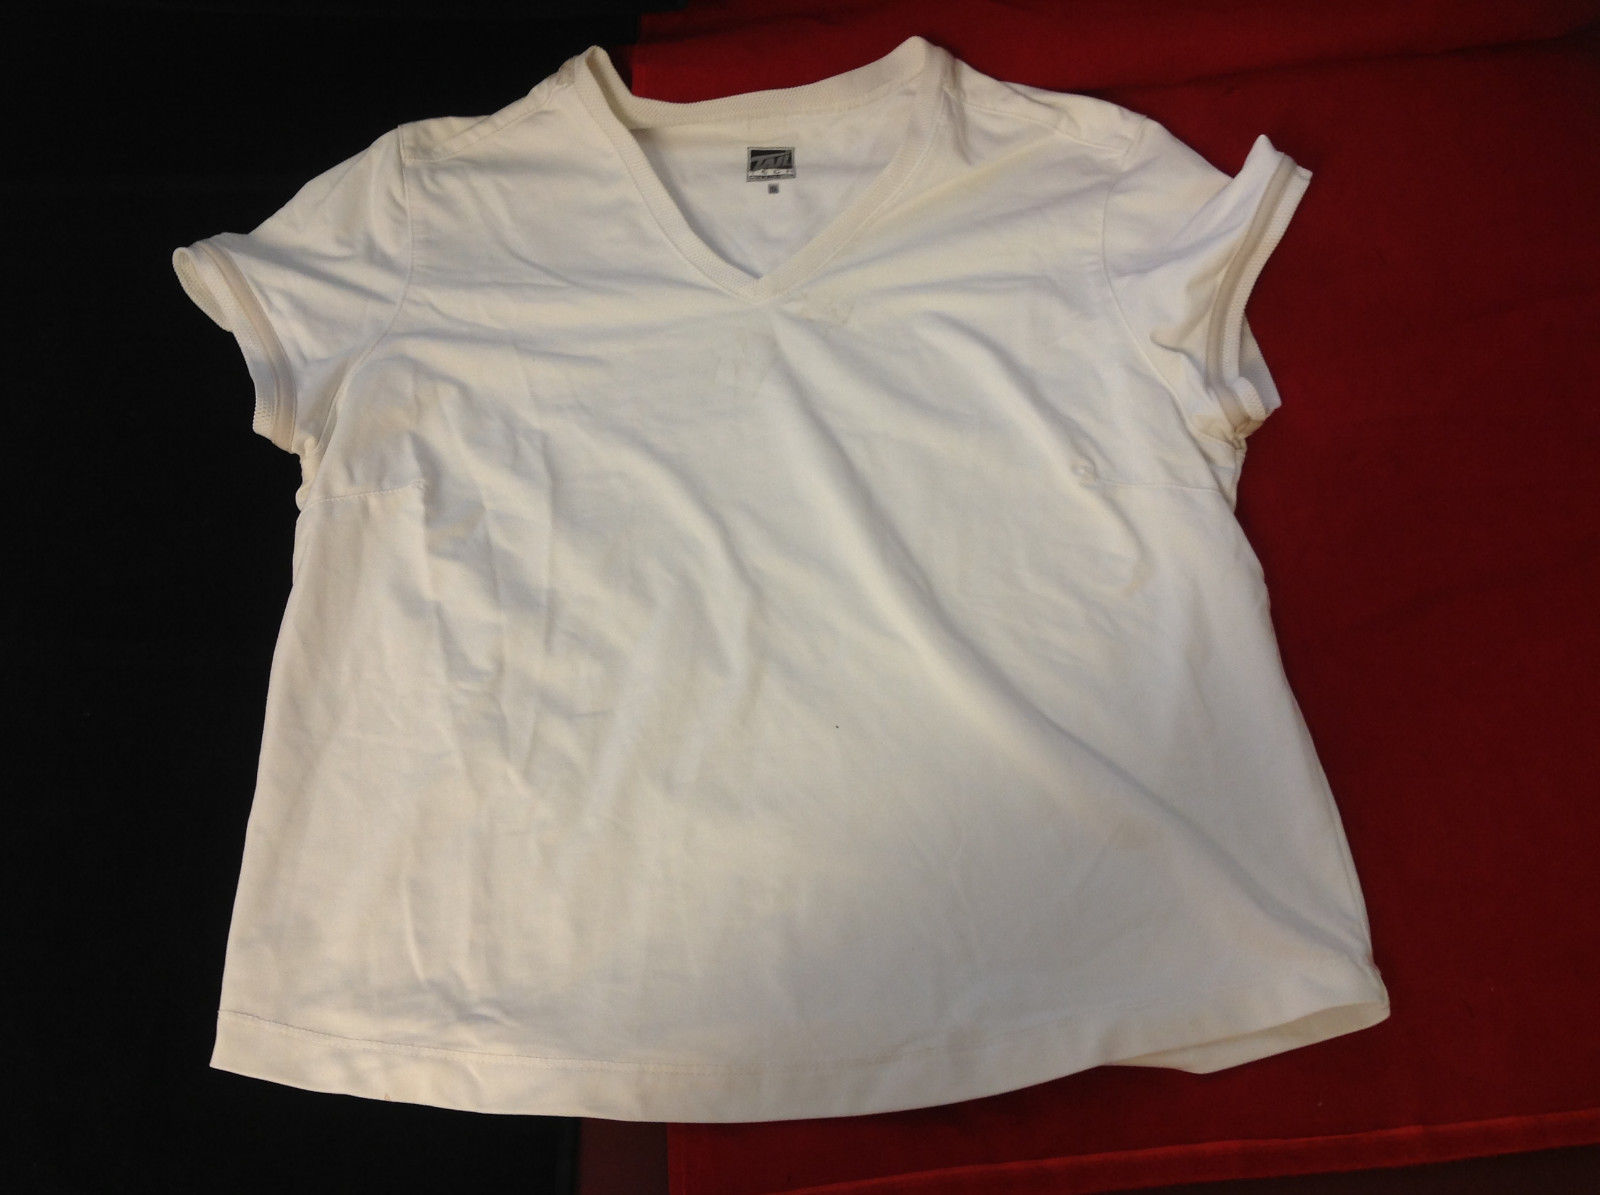 Tail Tech Brand Womens White Athletic Workout Sport T Shirt Top size Small S